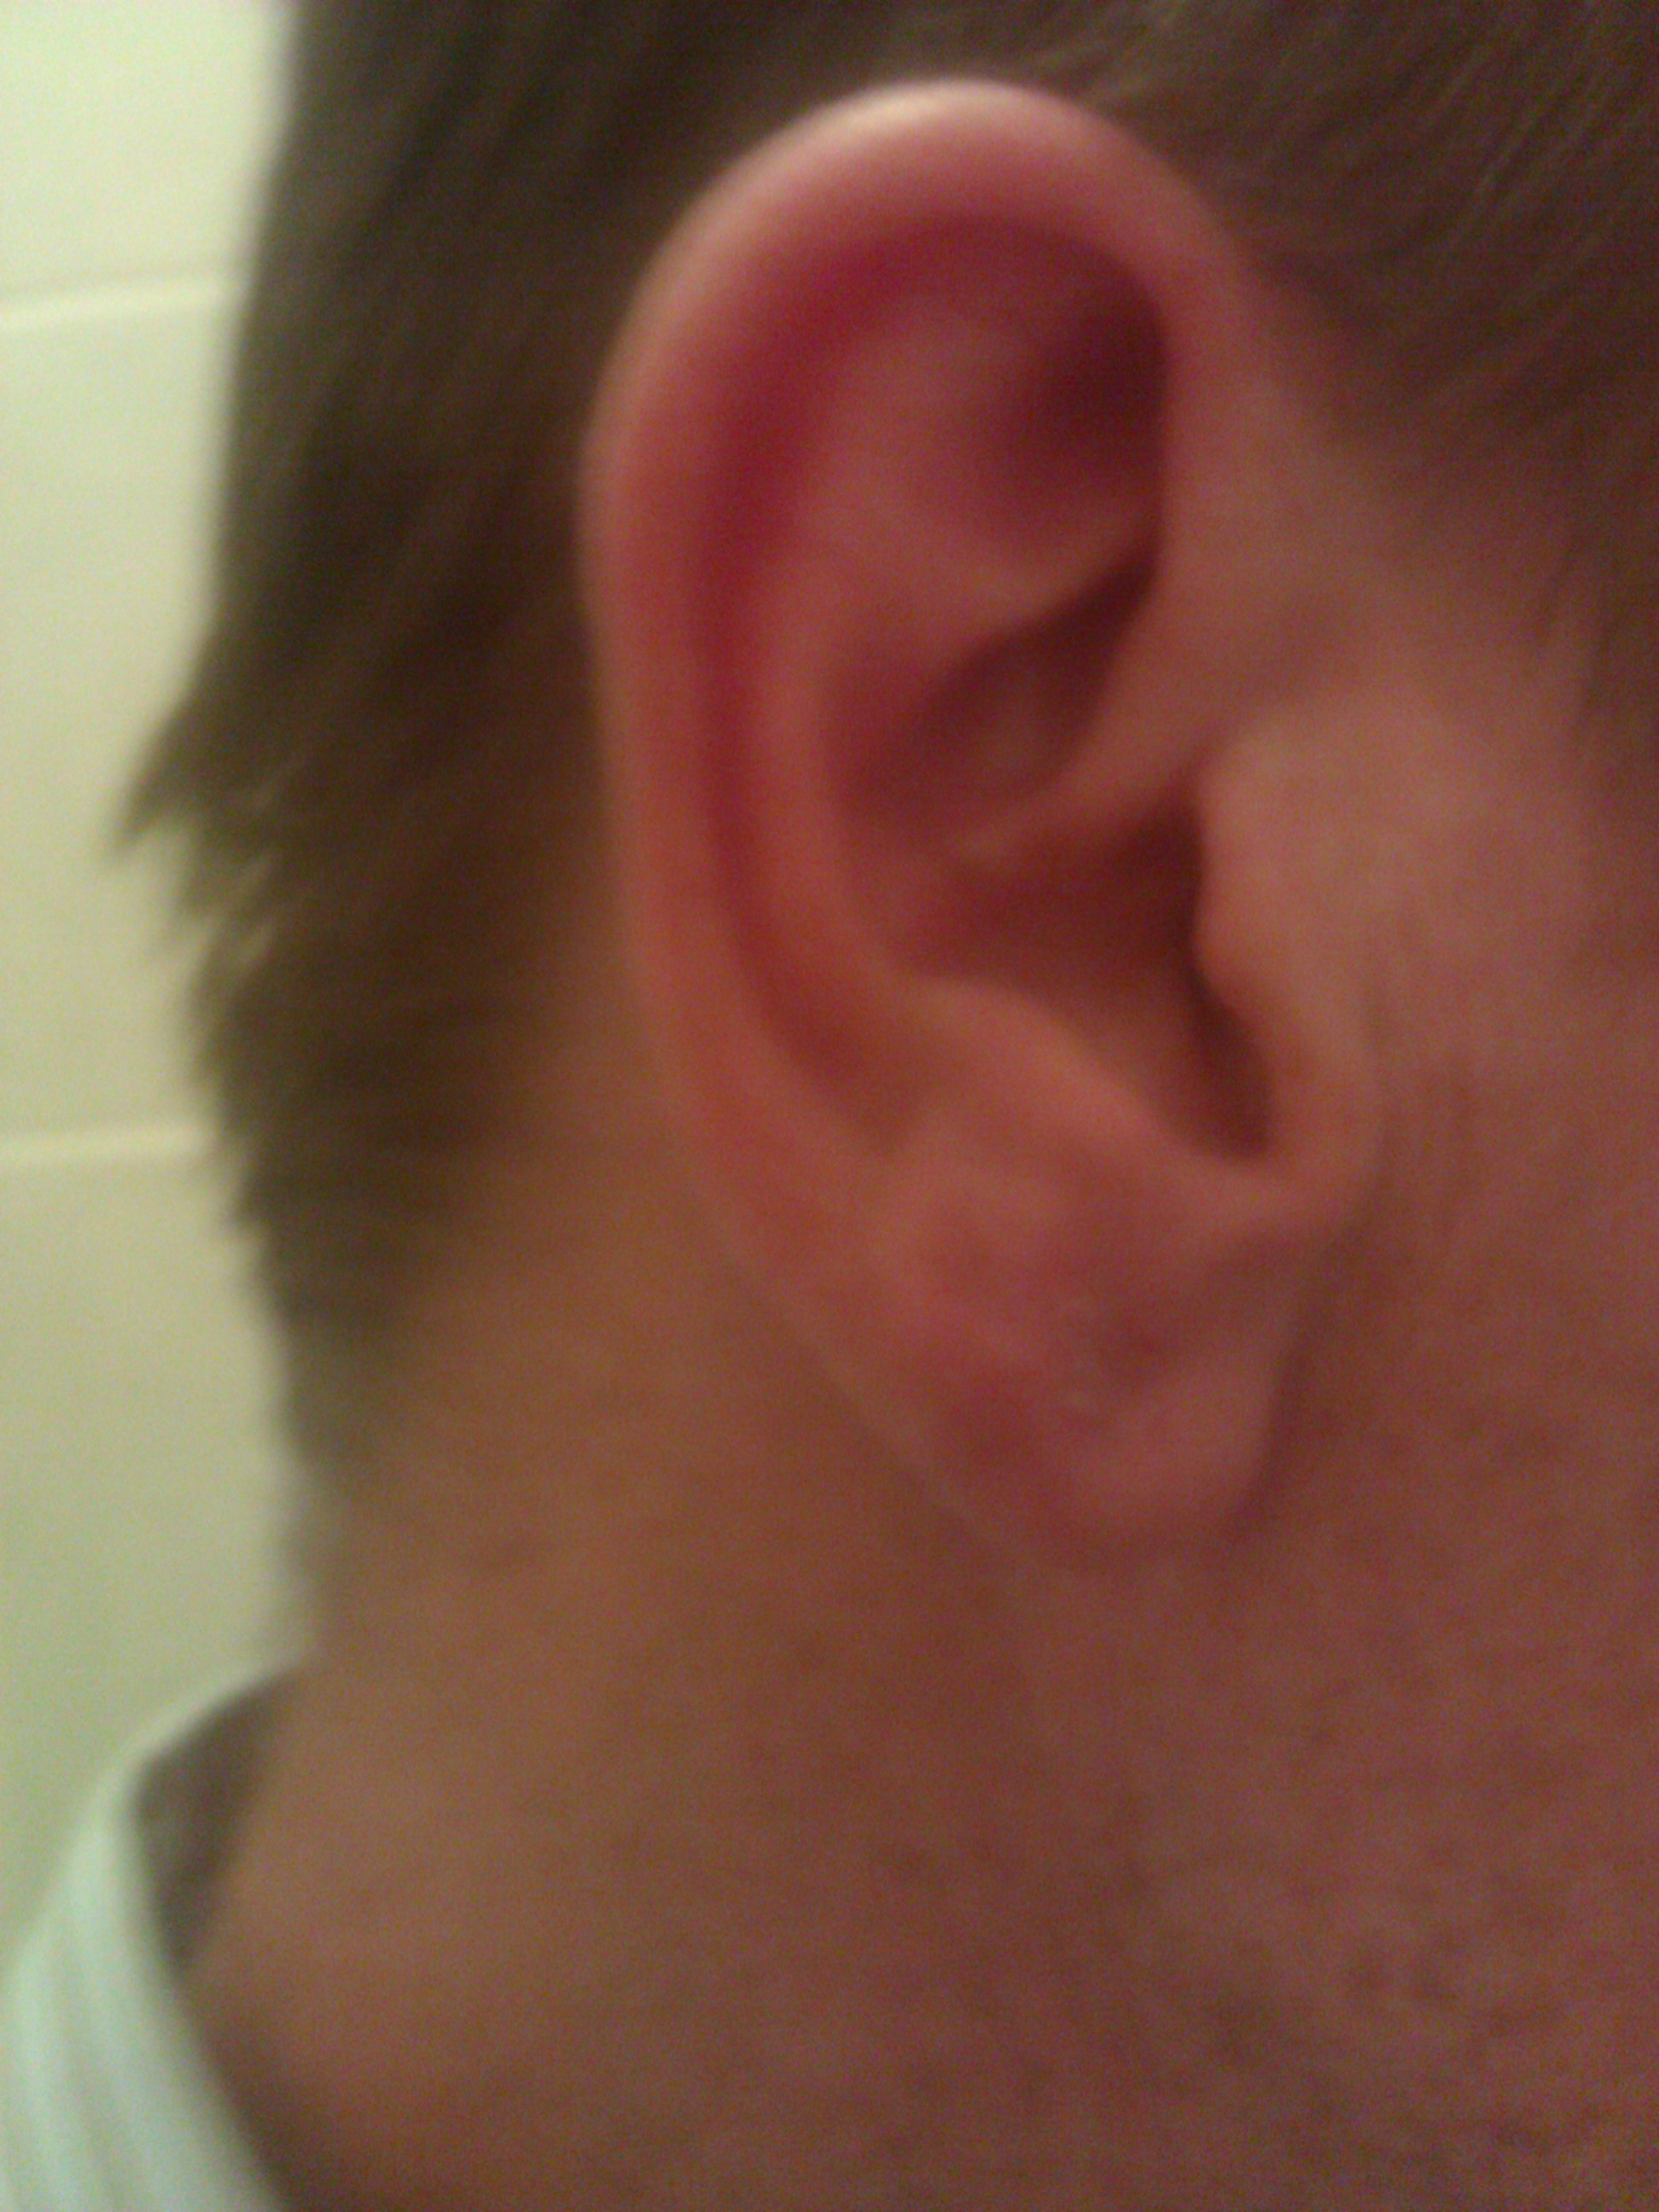 how to fix a infected ear lobe